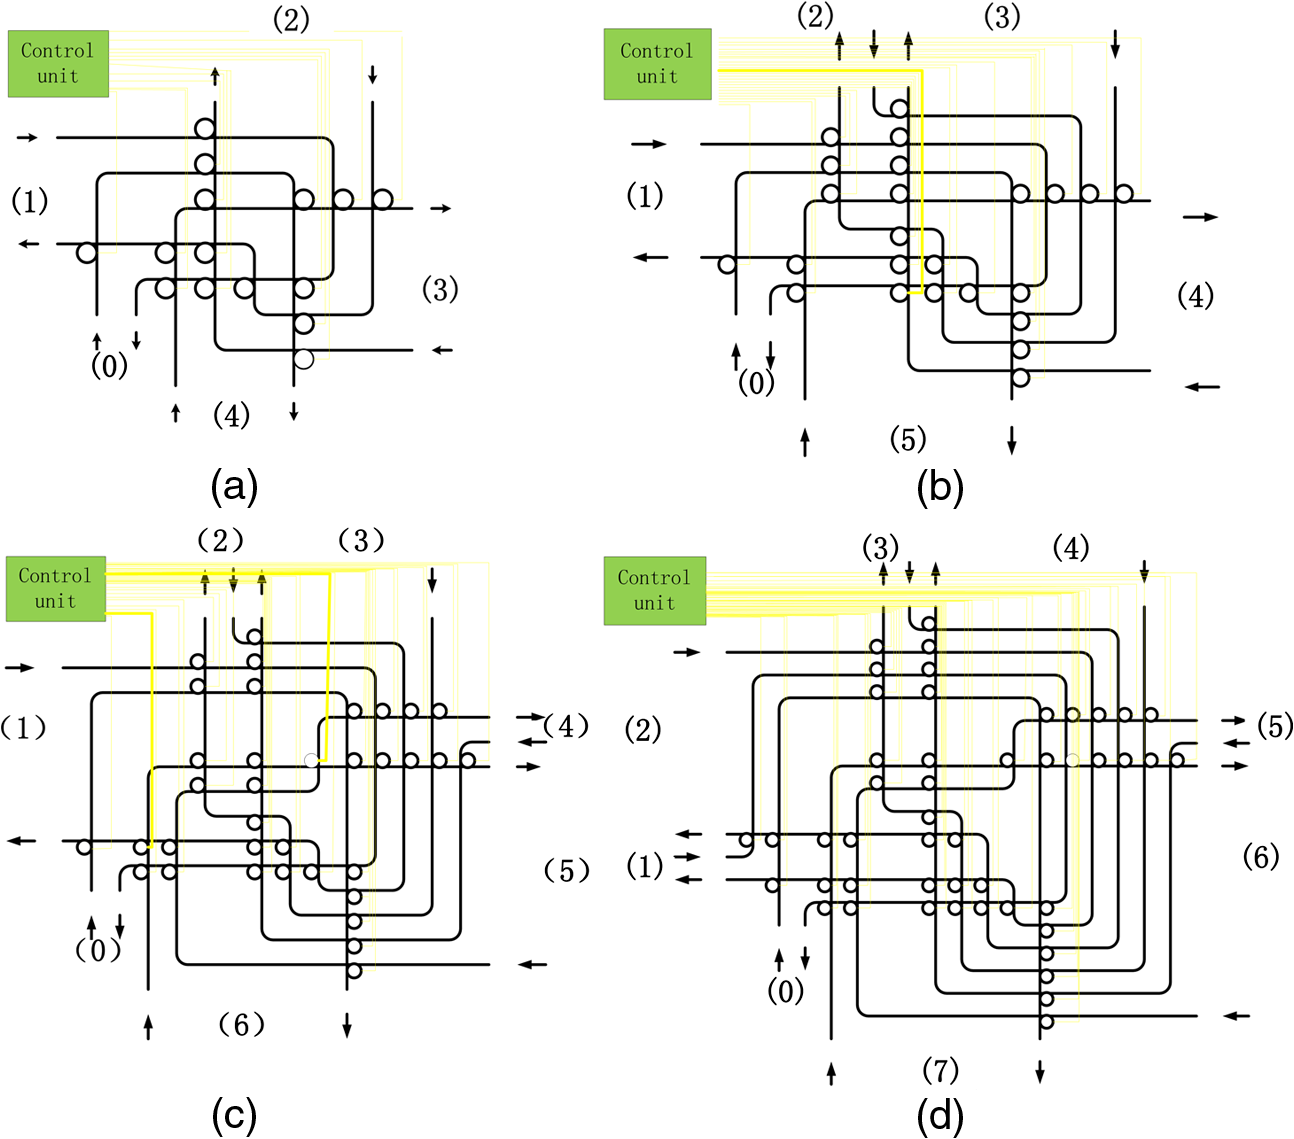 Universal Method For Crosstalk Noise And Transmission Loss Analysis Optical Interface Circuit Sensor System Fig 3